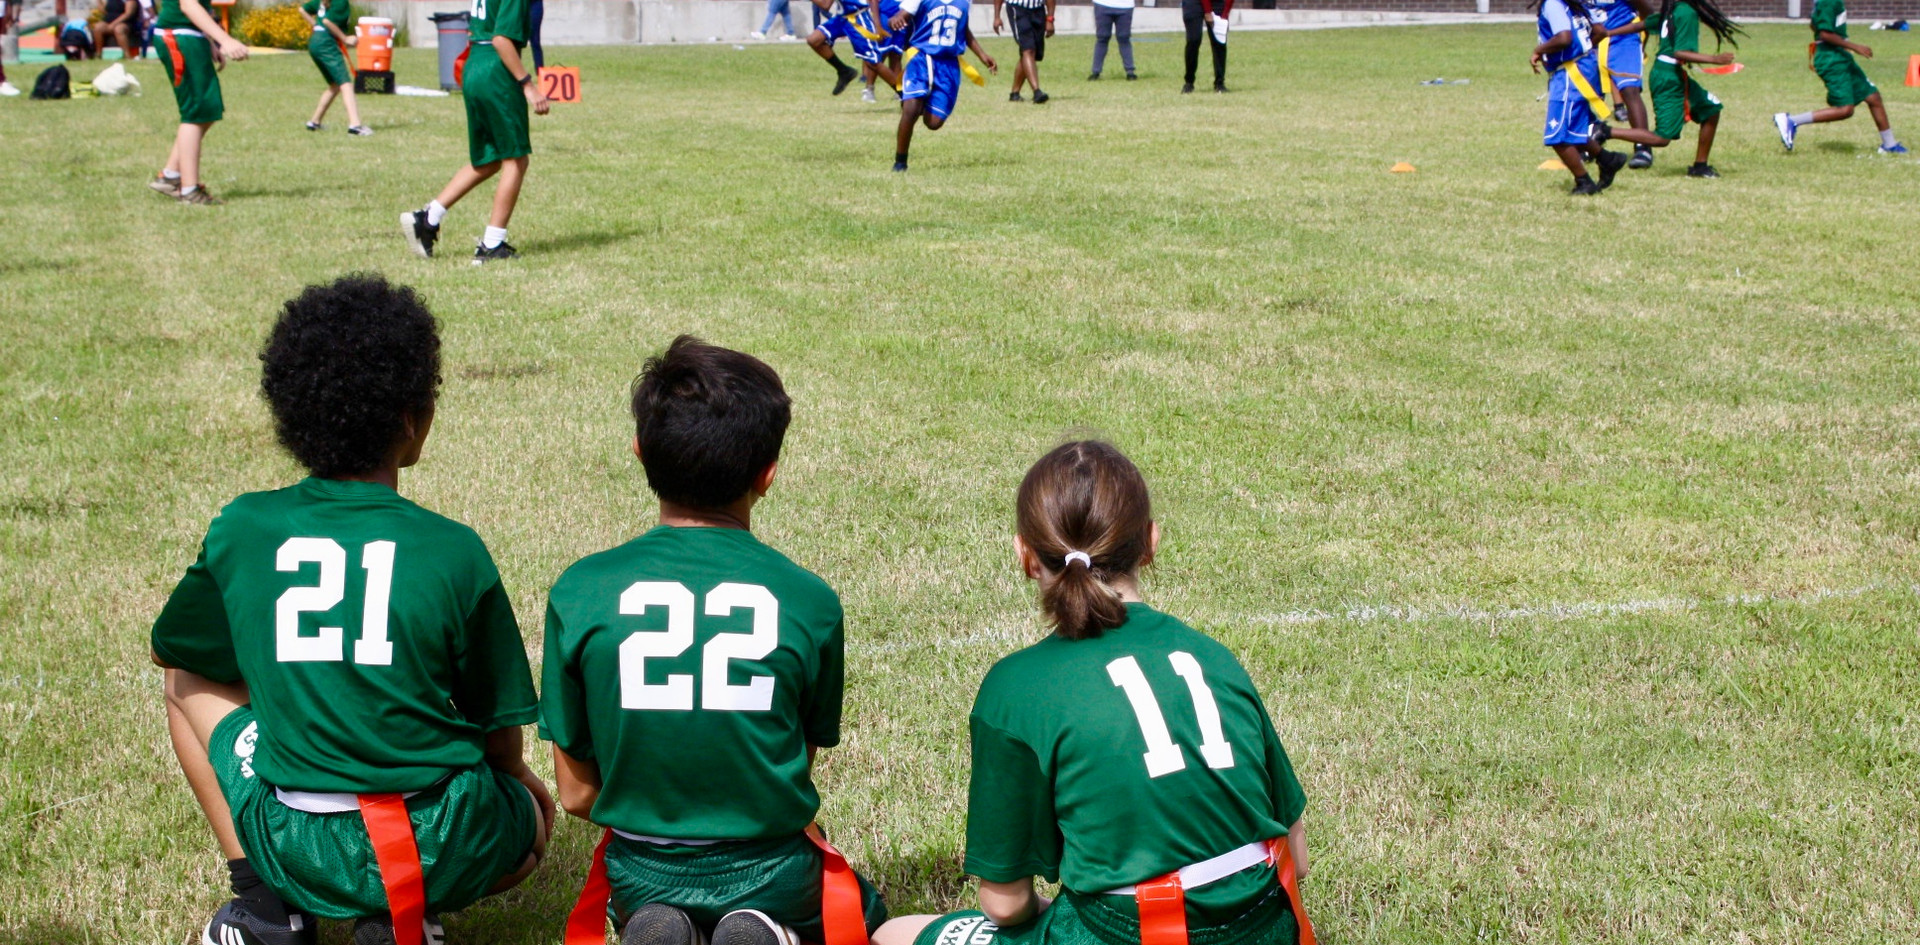 WNSO Mighty Oaks met Harriet Tubman Charter School in a great match that ended in a tie of 12 to 12